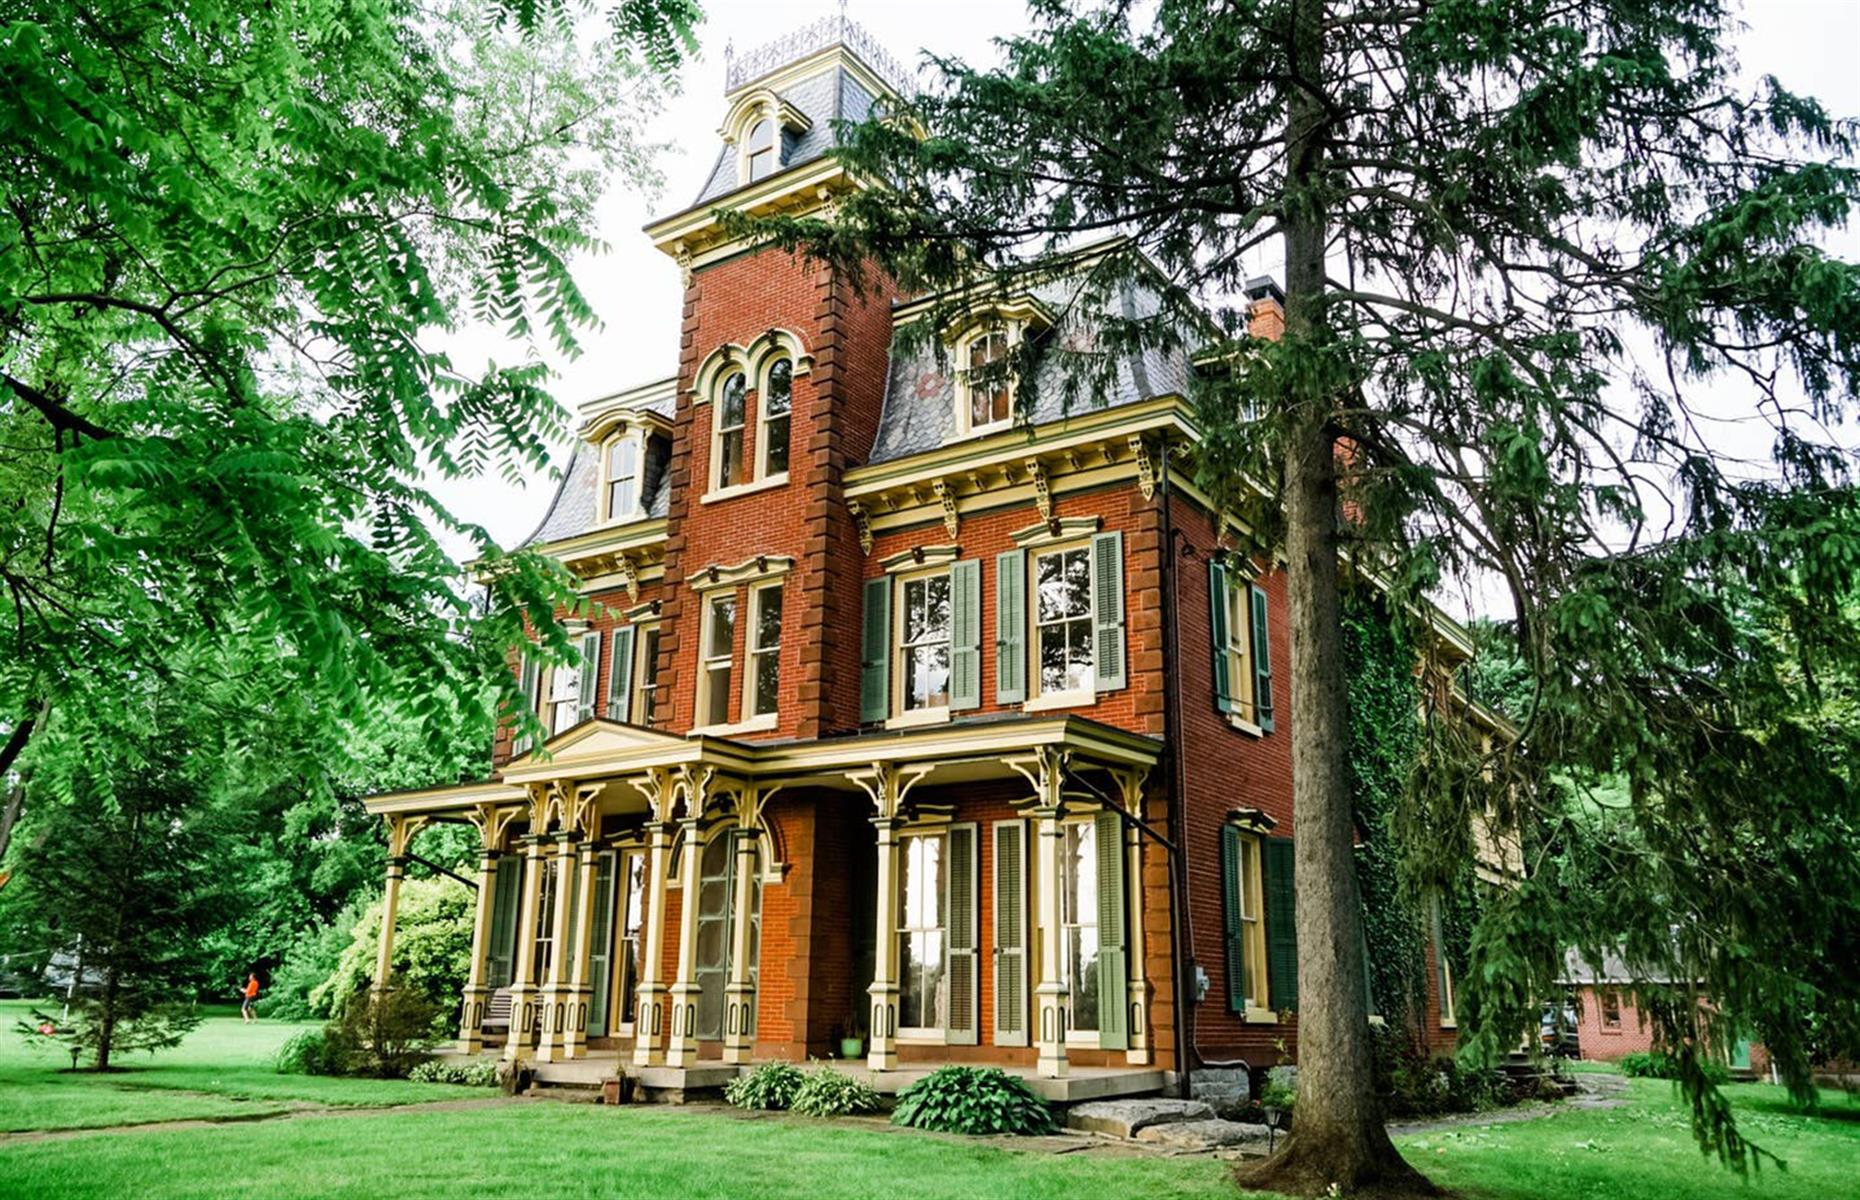 Slide 40 of 52: Built in the 1860s, this historic eight-bedroom mansion is set on two and a half acres of atmospheric pine forests and rolling farmland in Lebanon County. With easy access from Philadelphia, Wilmington, Harrisburg and Allentown, it's in a superblocation.